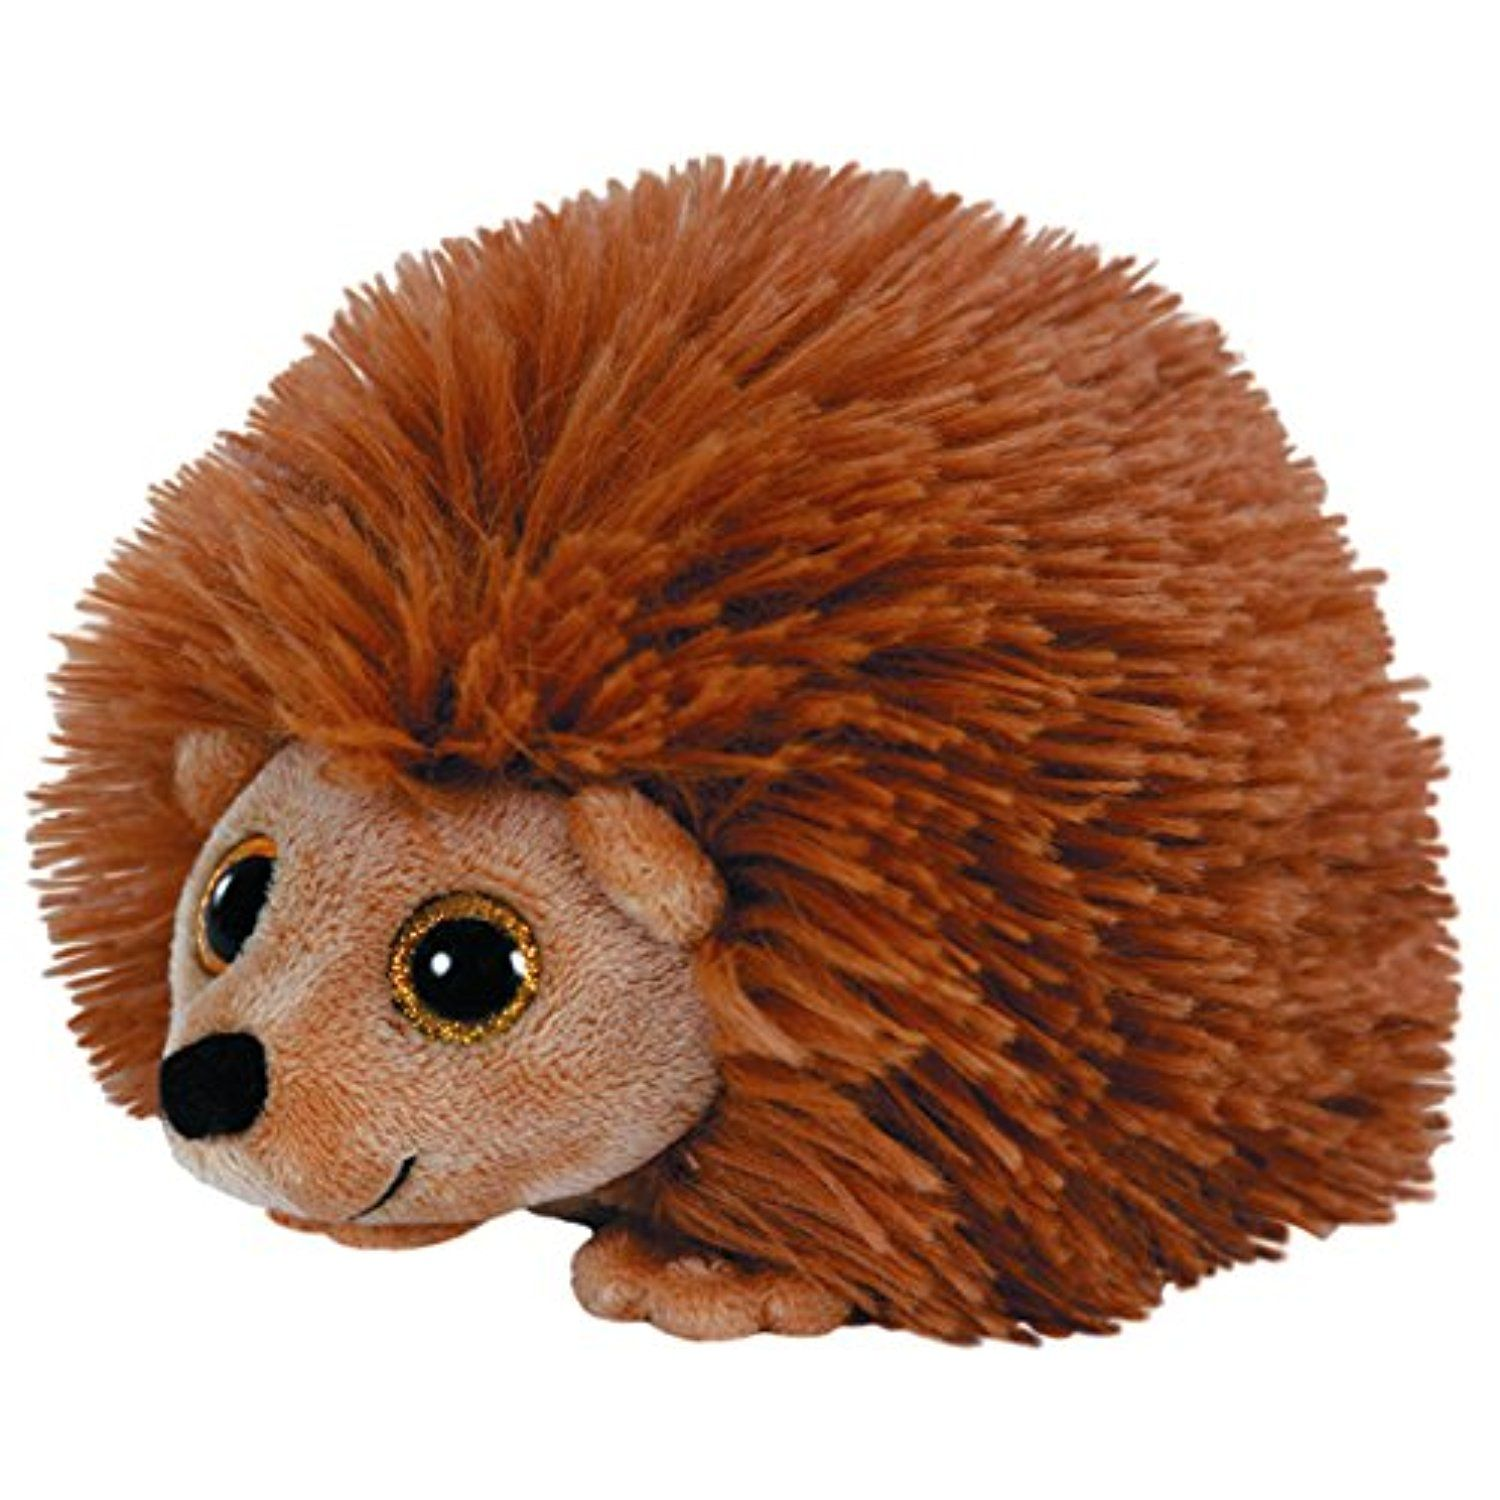 Ty Beanie Babies Herbert Brown Hedgehog Read More At The Image Link This Is An Affiliate Link Baby Beanie Ty Beanie Beanie Boos [ 1500 x 1500 Pixel ]